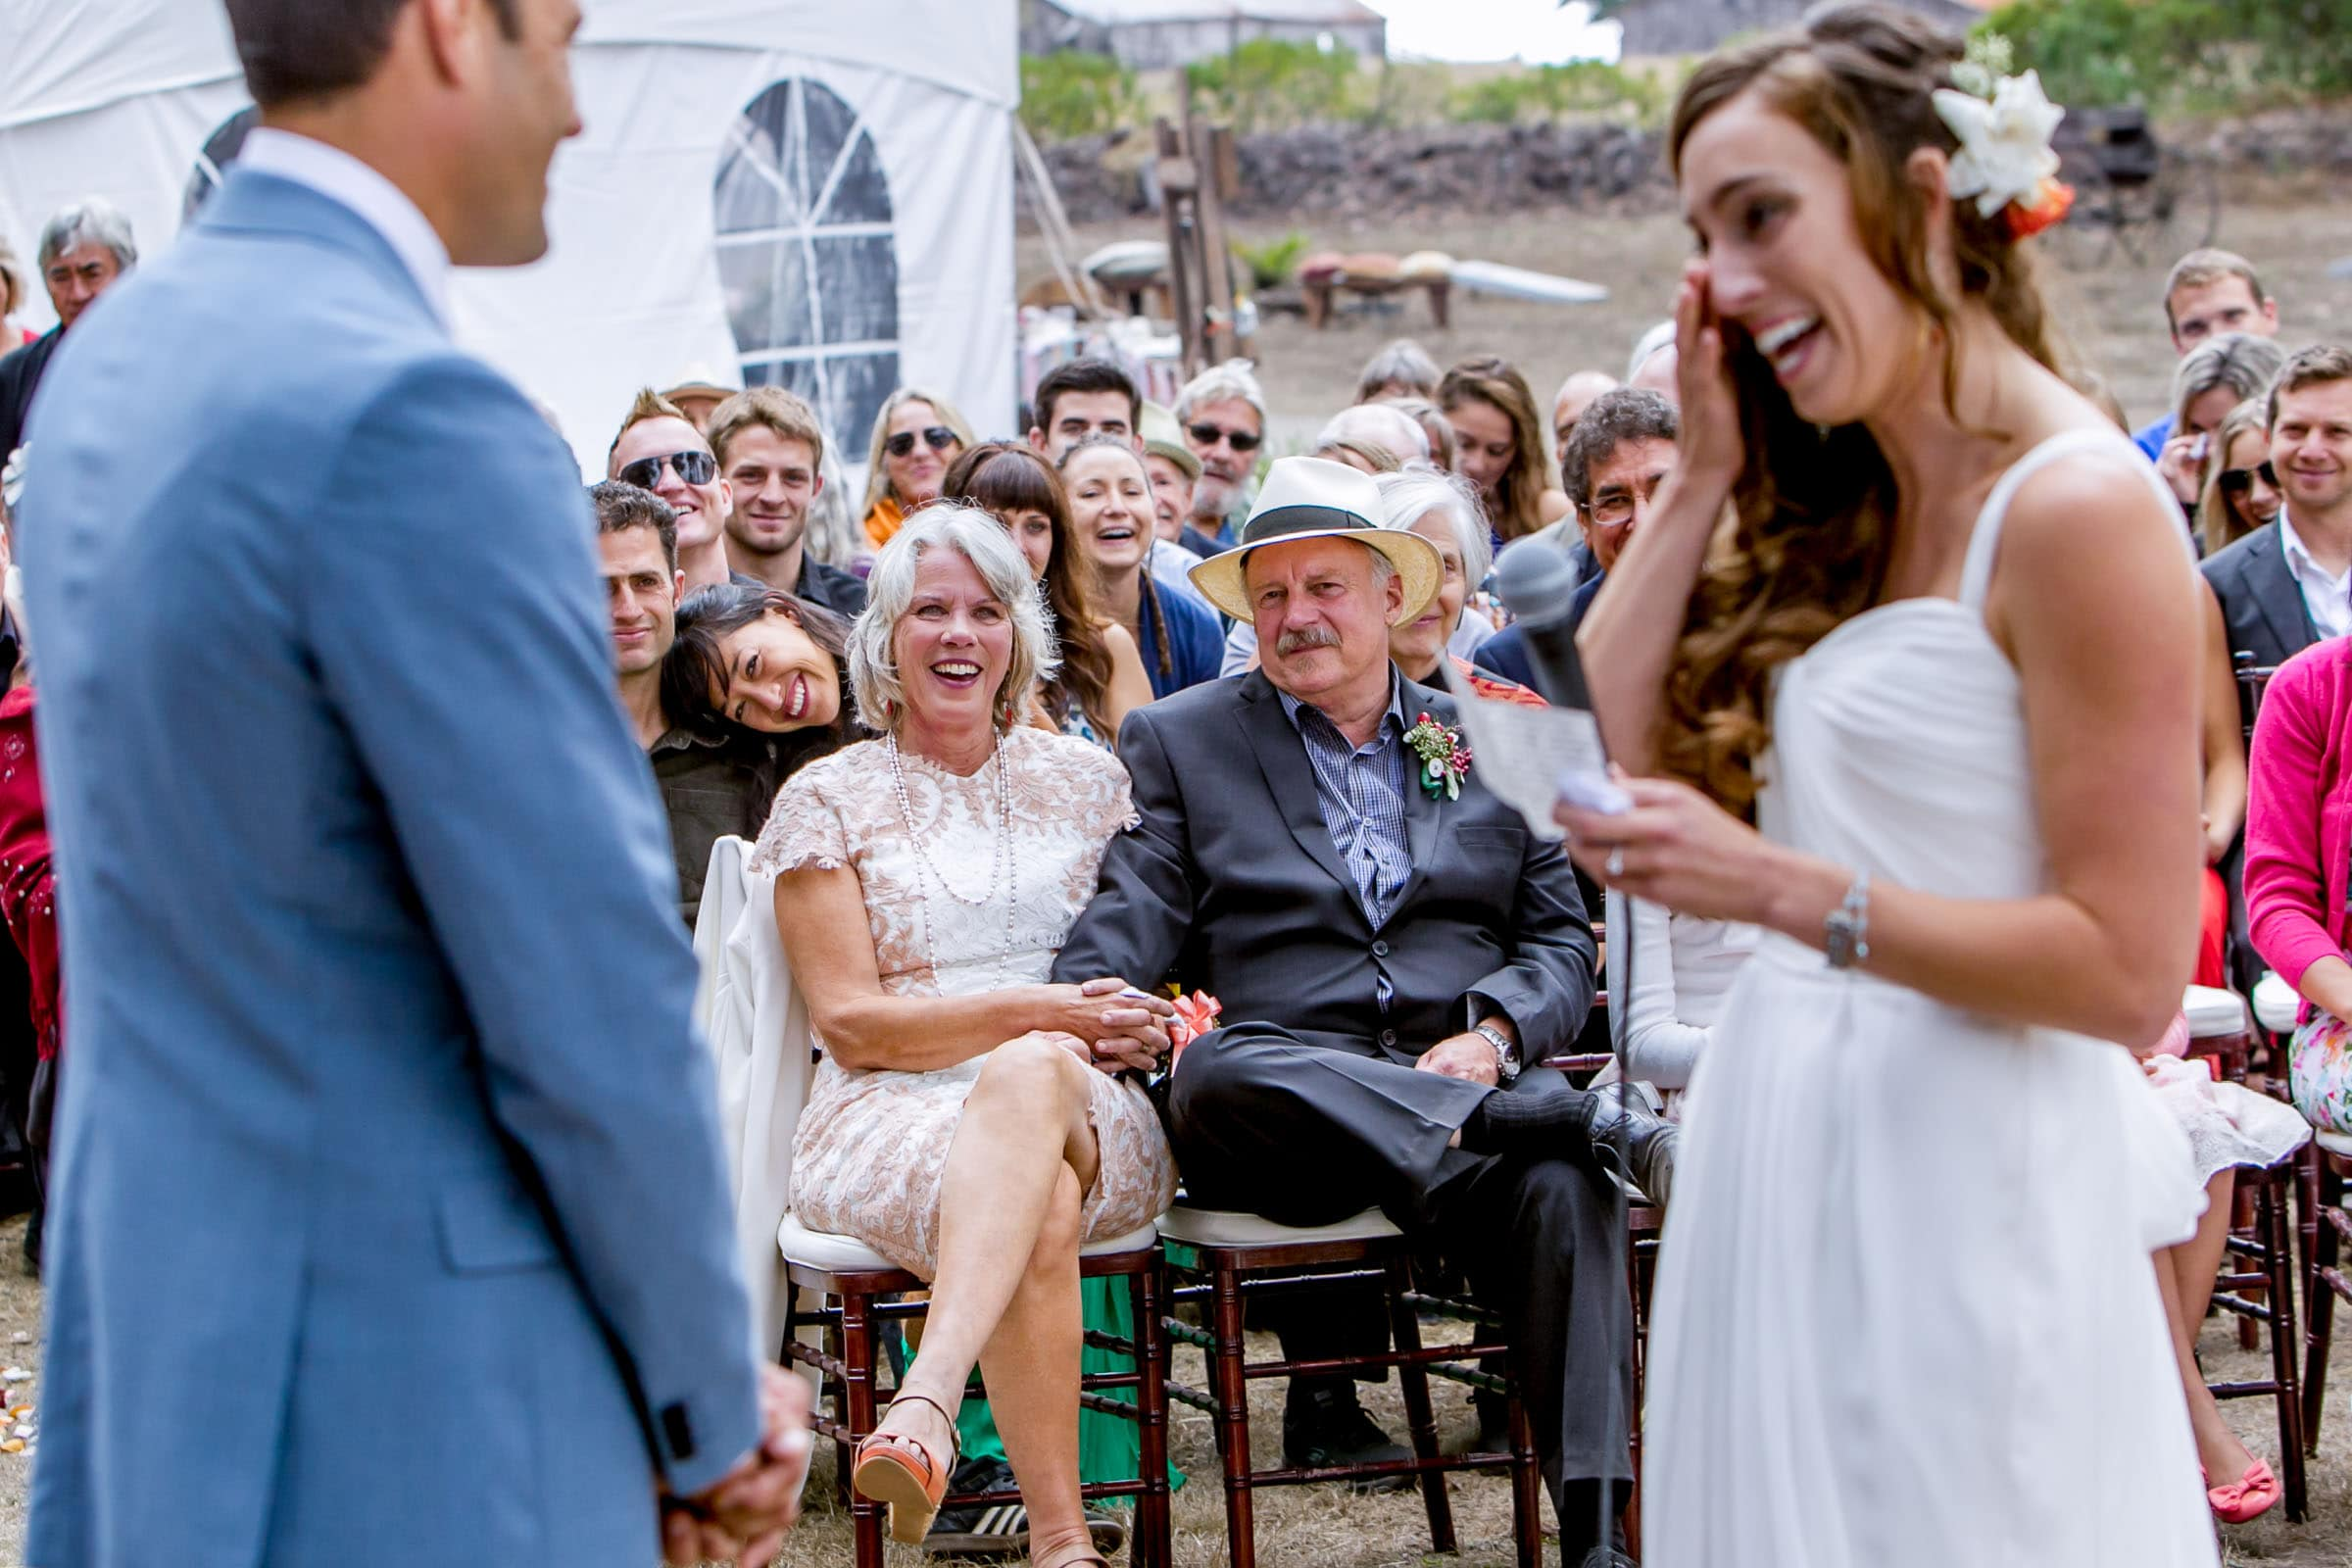 Emotional family and friends watching the exchange of vows during a Mendocino Coast wedding ceremony at Spring Ranch